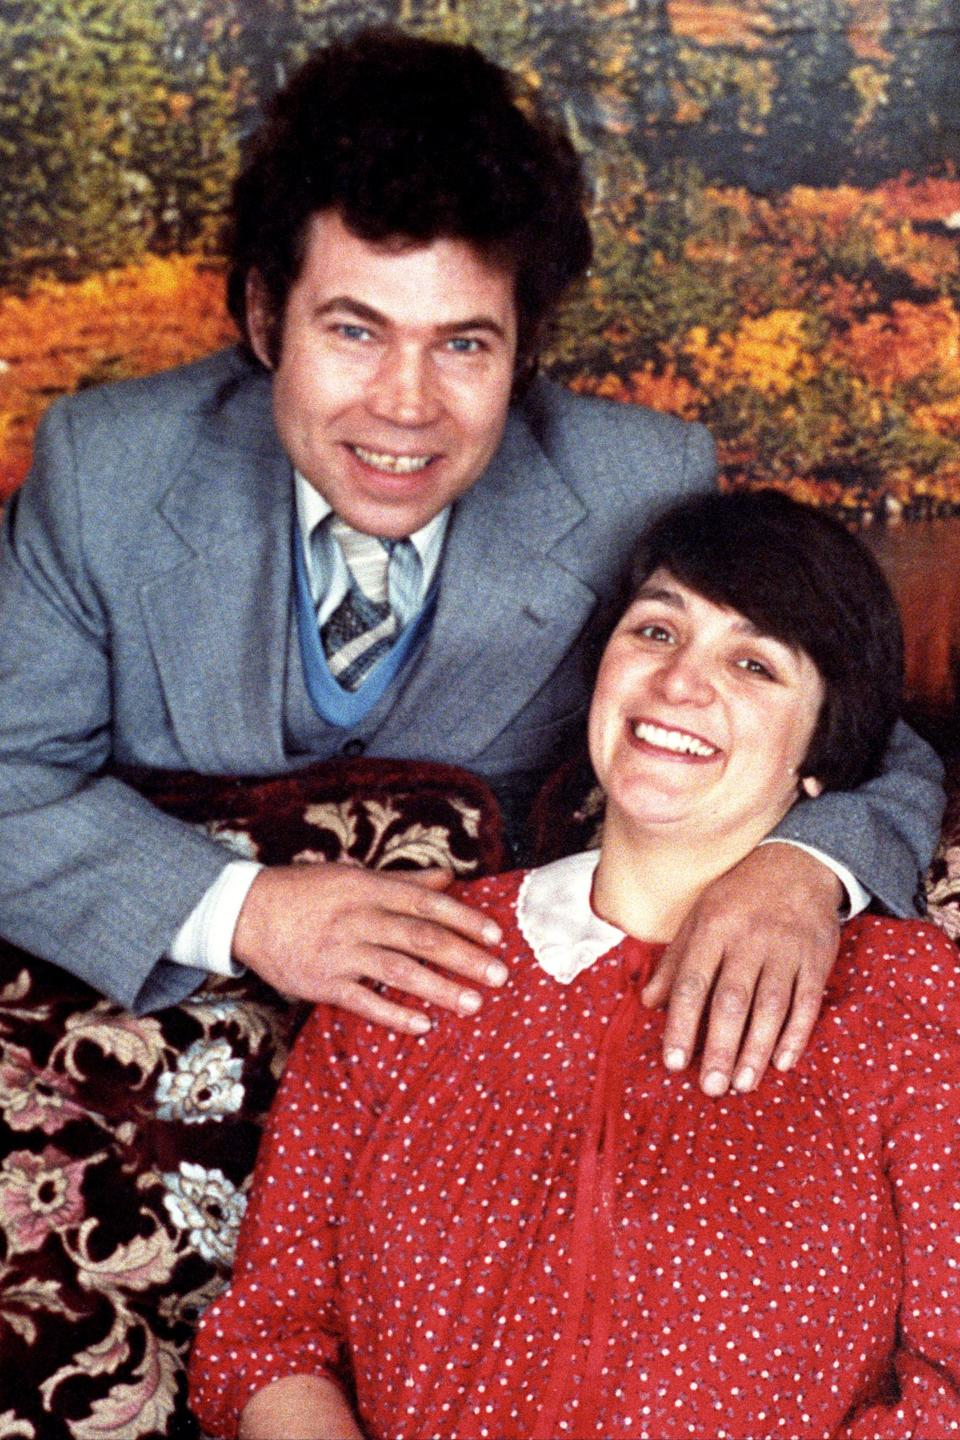 Serial killers Fred and Rosemary WestPA